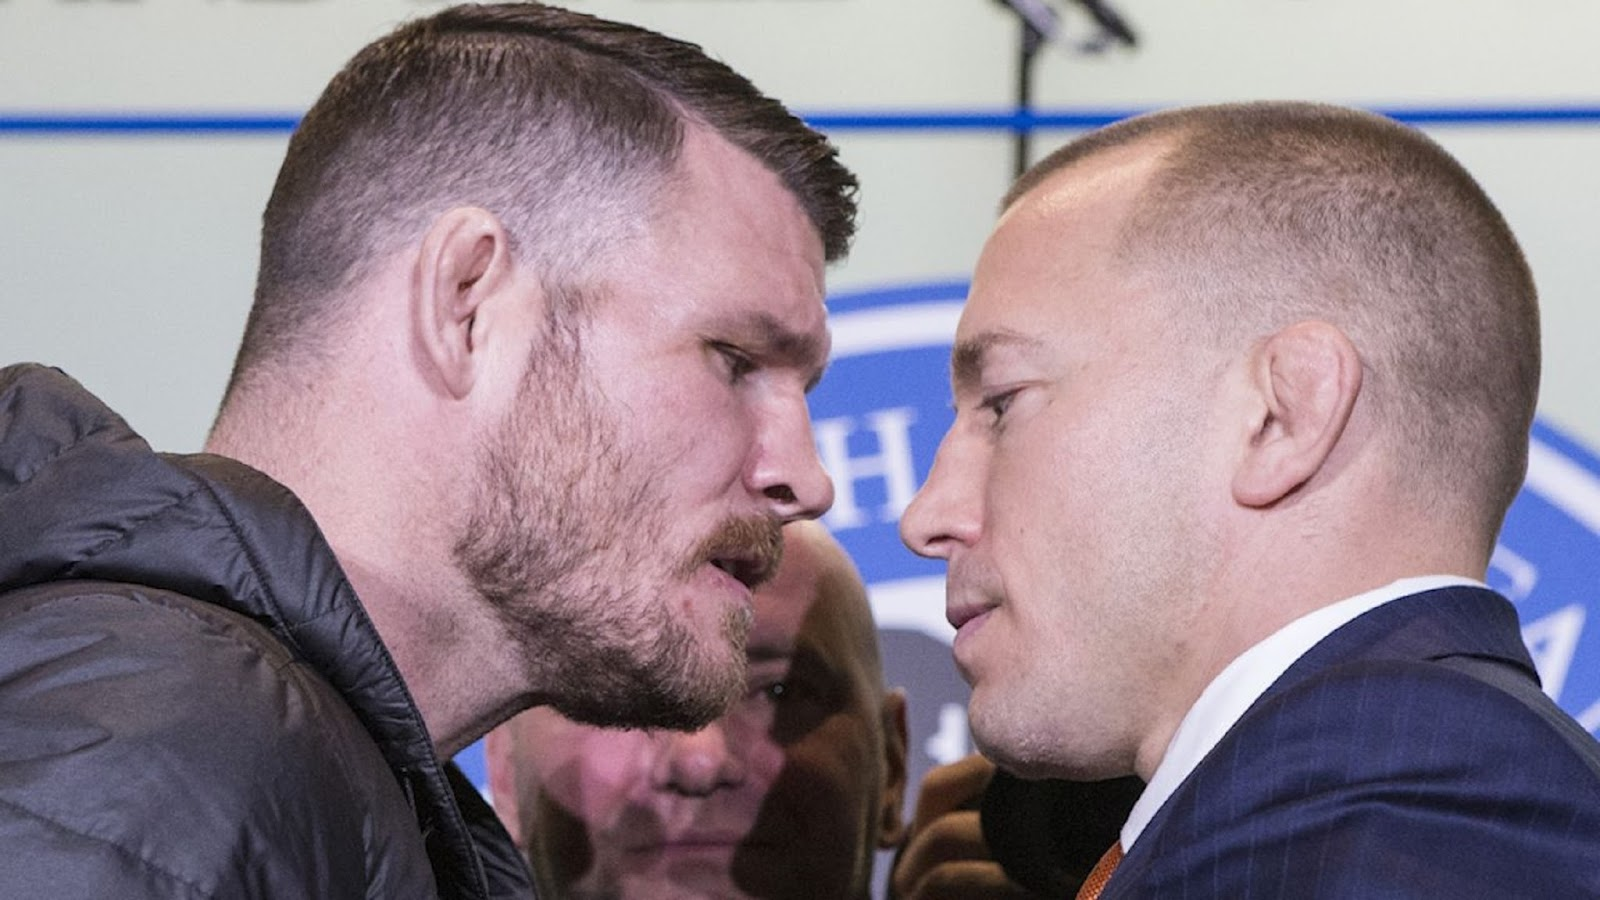 MICHAEL BISPING VS. GEORGES ST PIERRE